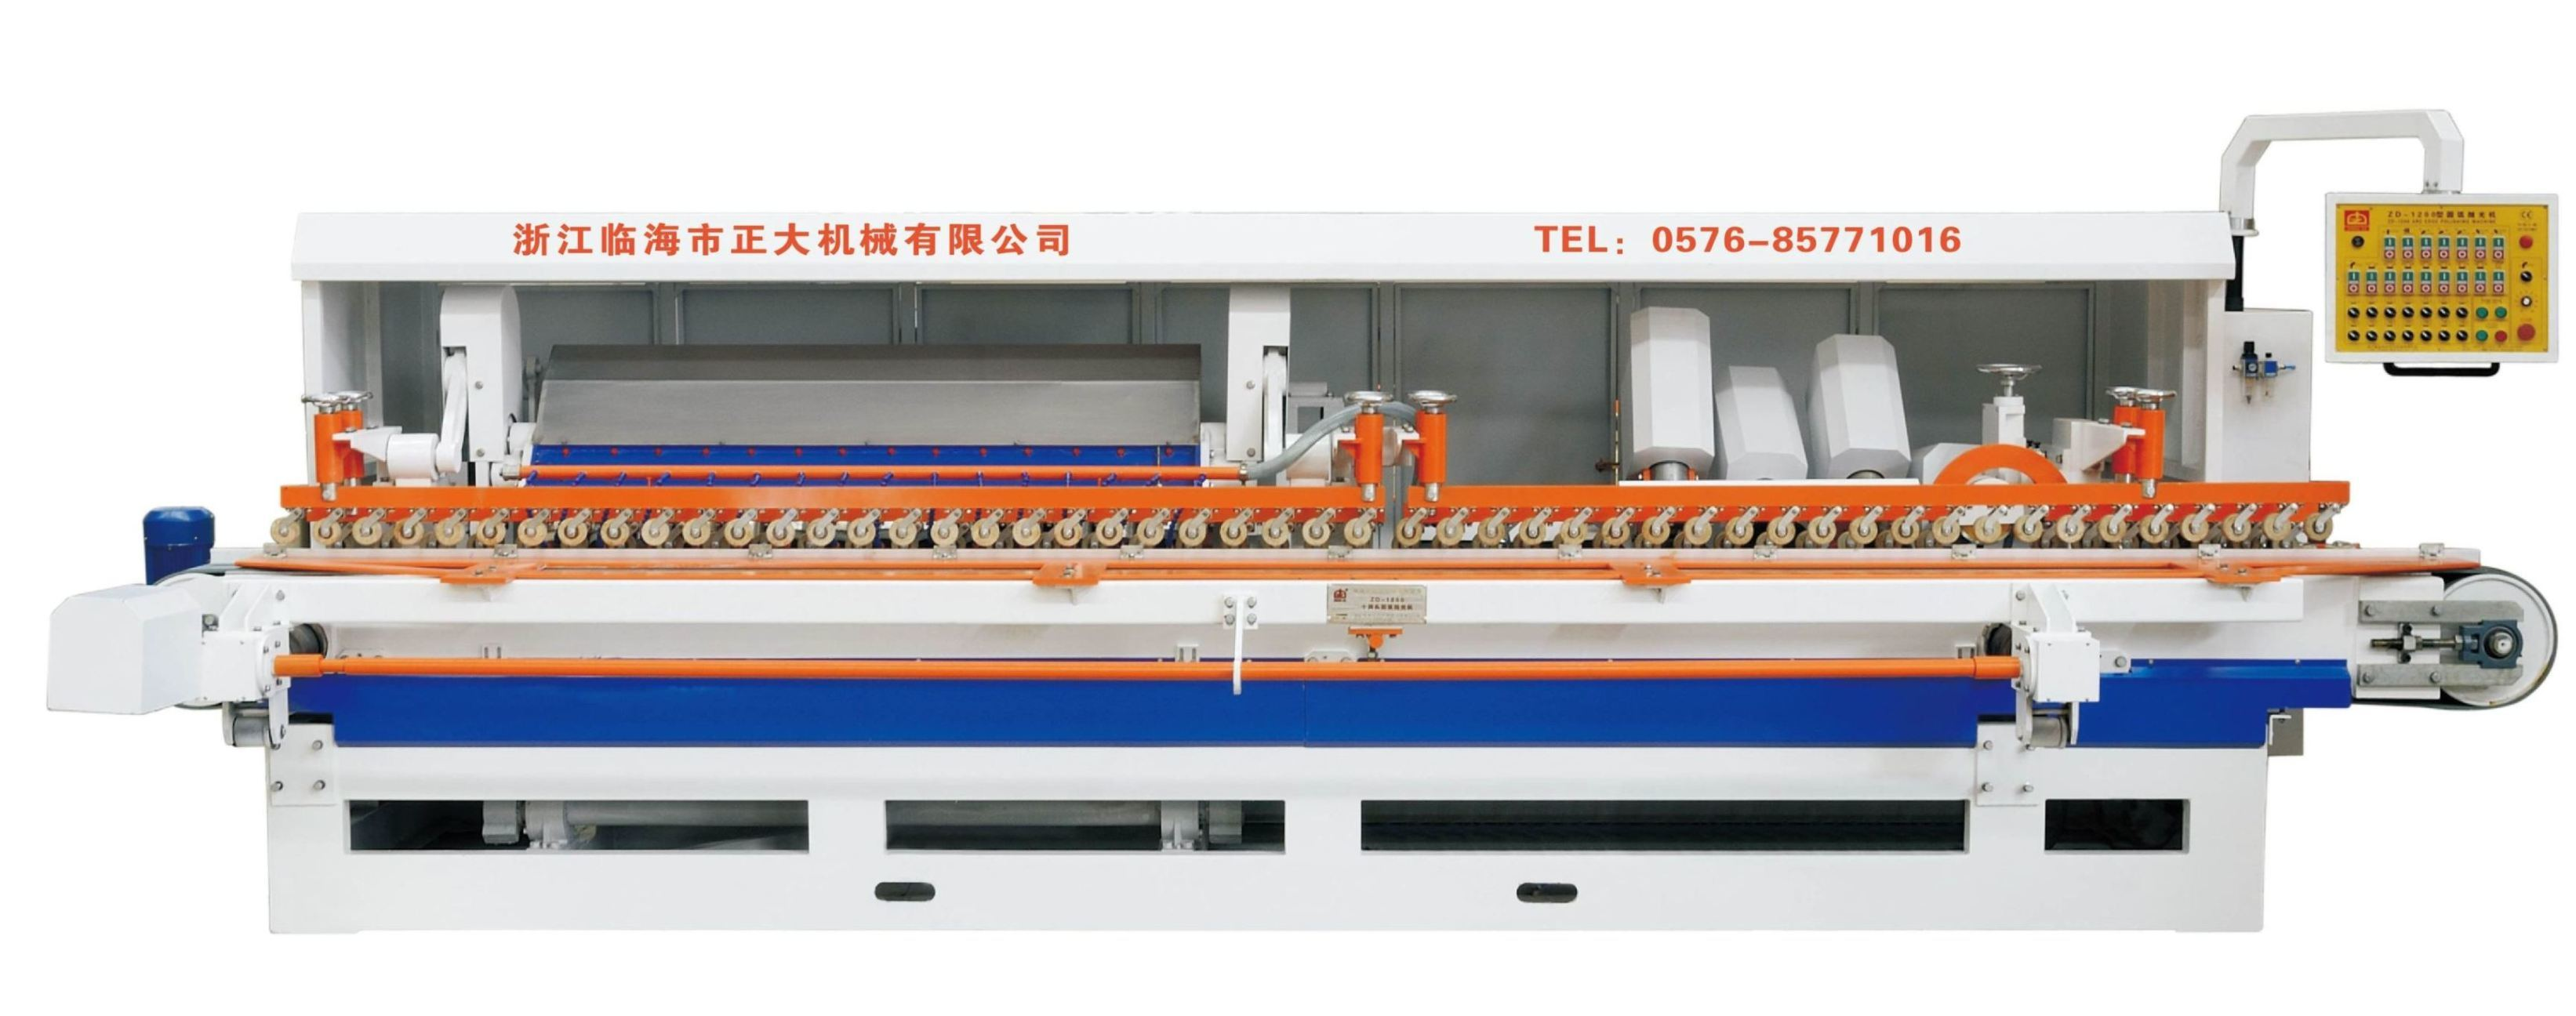 China ceramic tiles edge grinding and polishing machine with china ceramic tiles edge grinding and polishing machine with automatic zd 1200 china polishing machine stone polishing machine doublecrazyfo Gallery